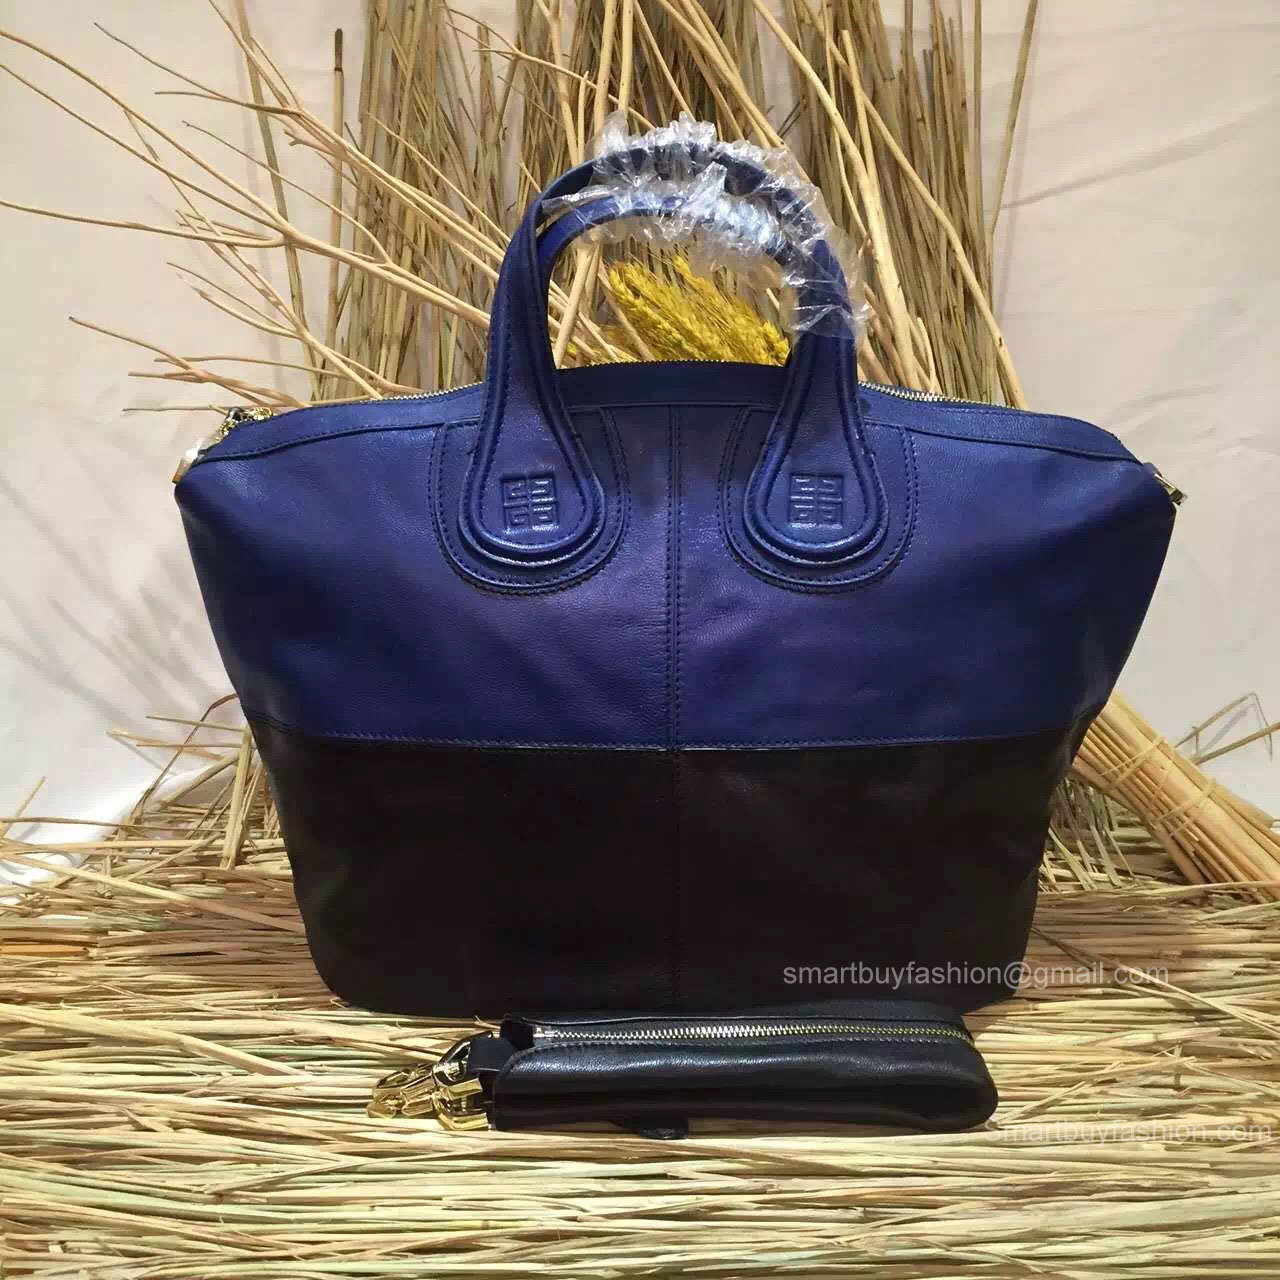 6d37e0838e62 Givenchy Nightingale Bag in Blue and Black Lambskin 285161